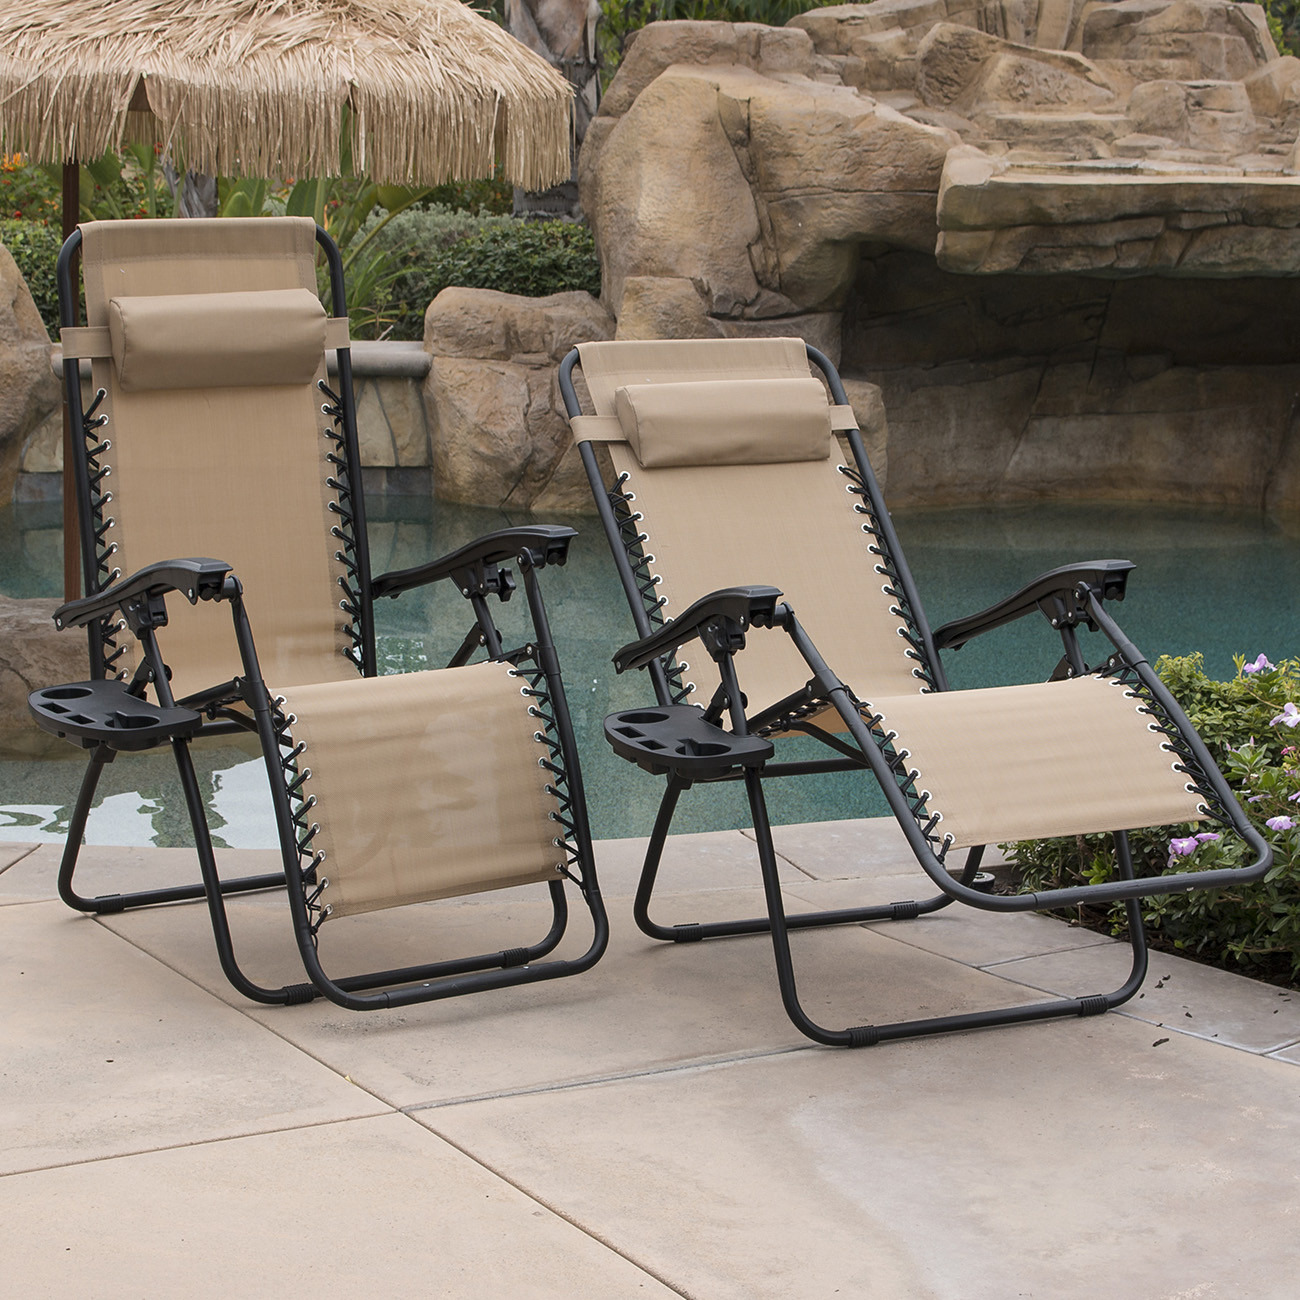 Best ideas about Outdoor Lounge Chairs . Save or Pin 2 Outdoor Zero Gravity Lounge Chair Beach Patio Pool Yard Now.